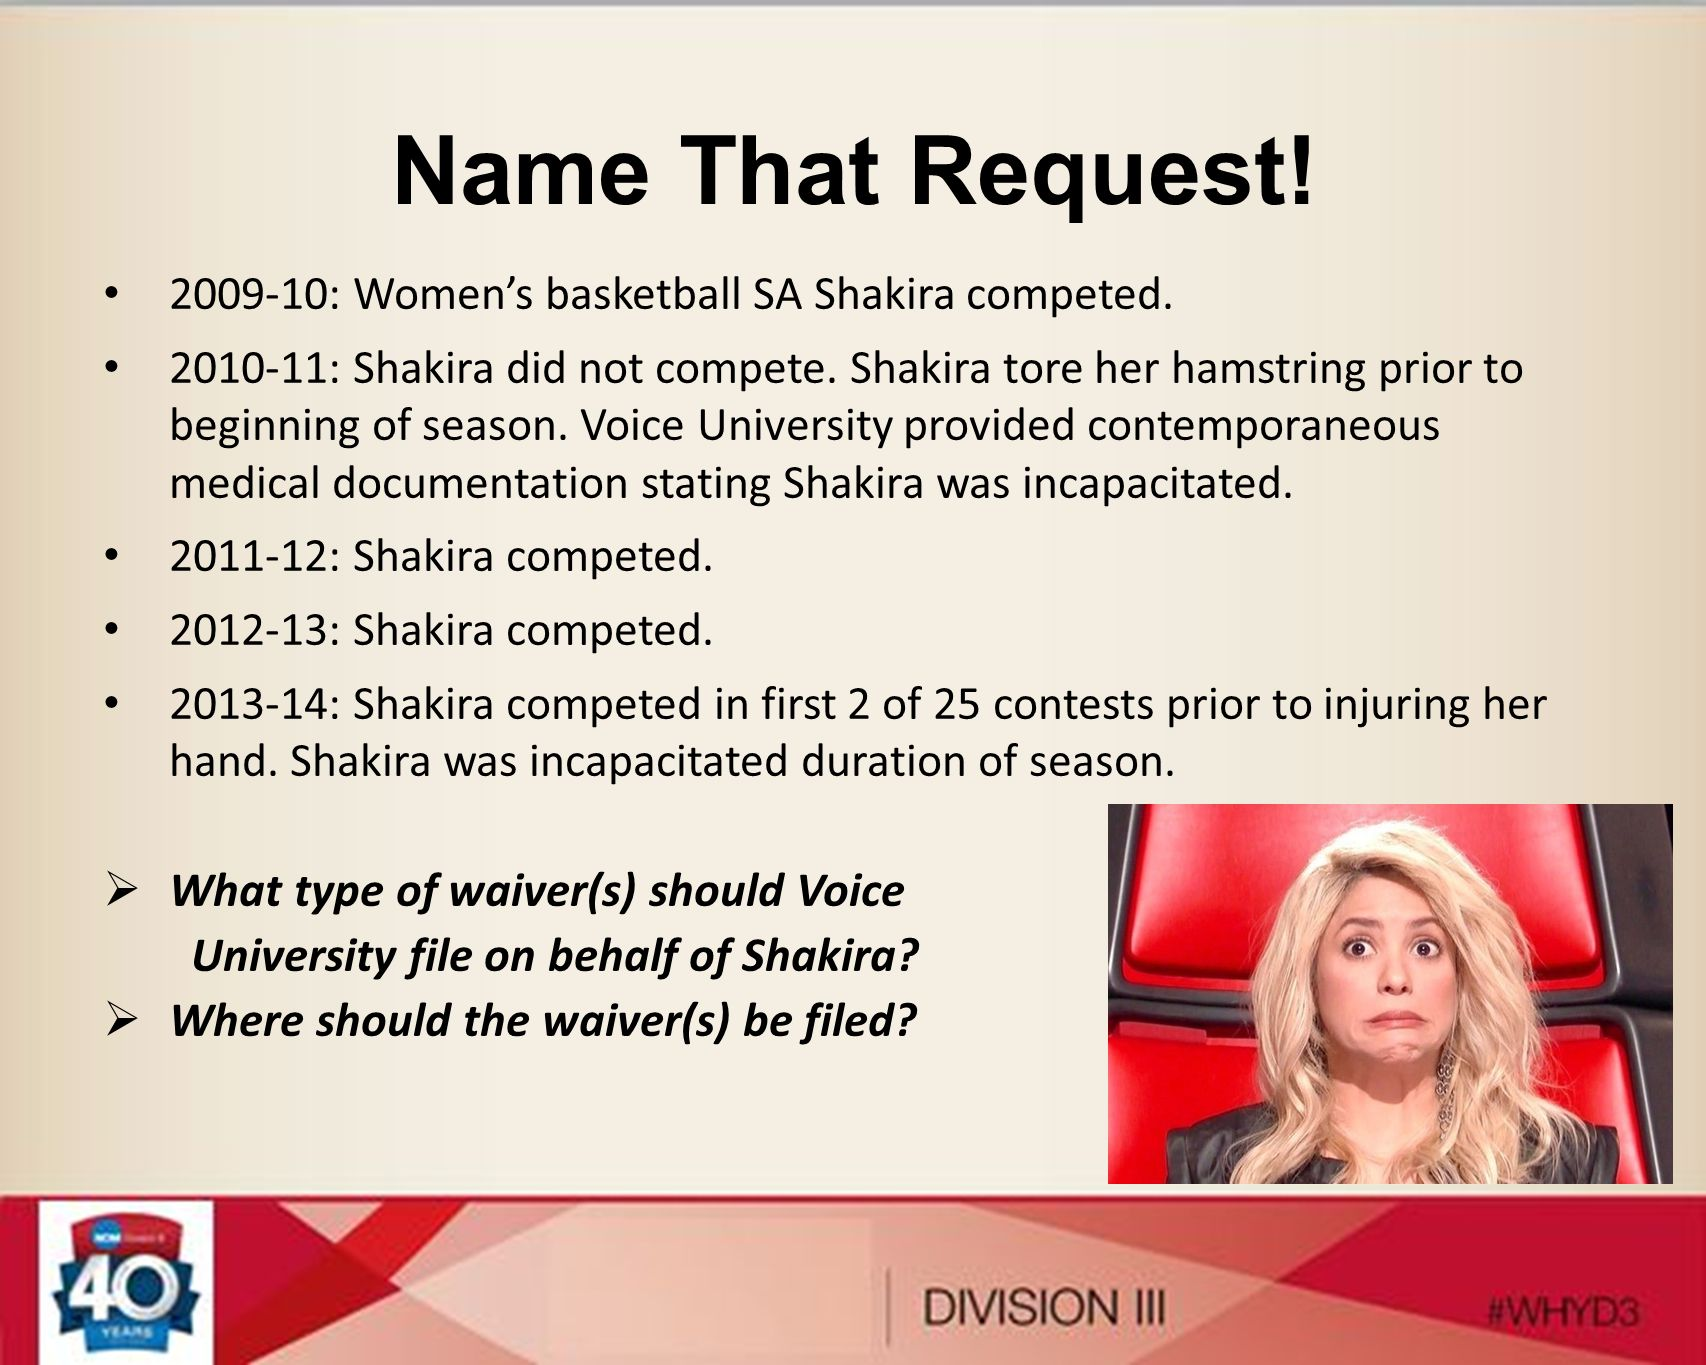 Name That Request! What type of waiver(s) should Voice